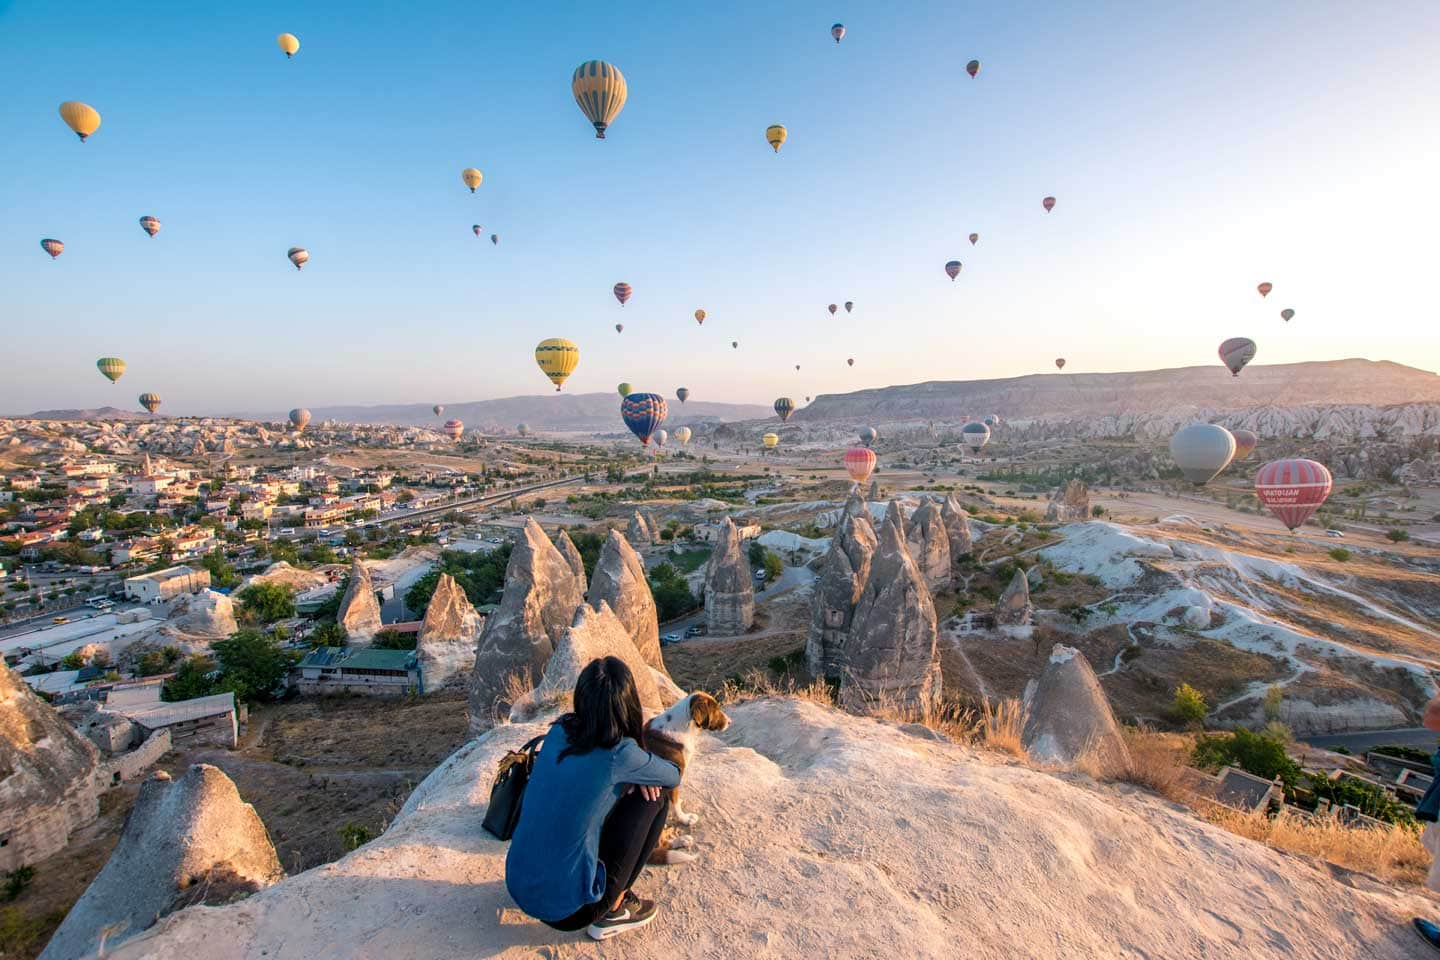 cappadocia hot air balloon watching